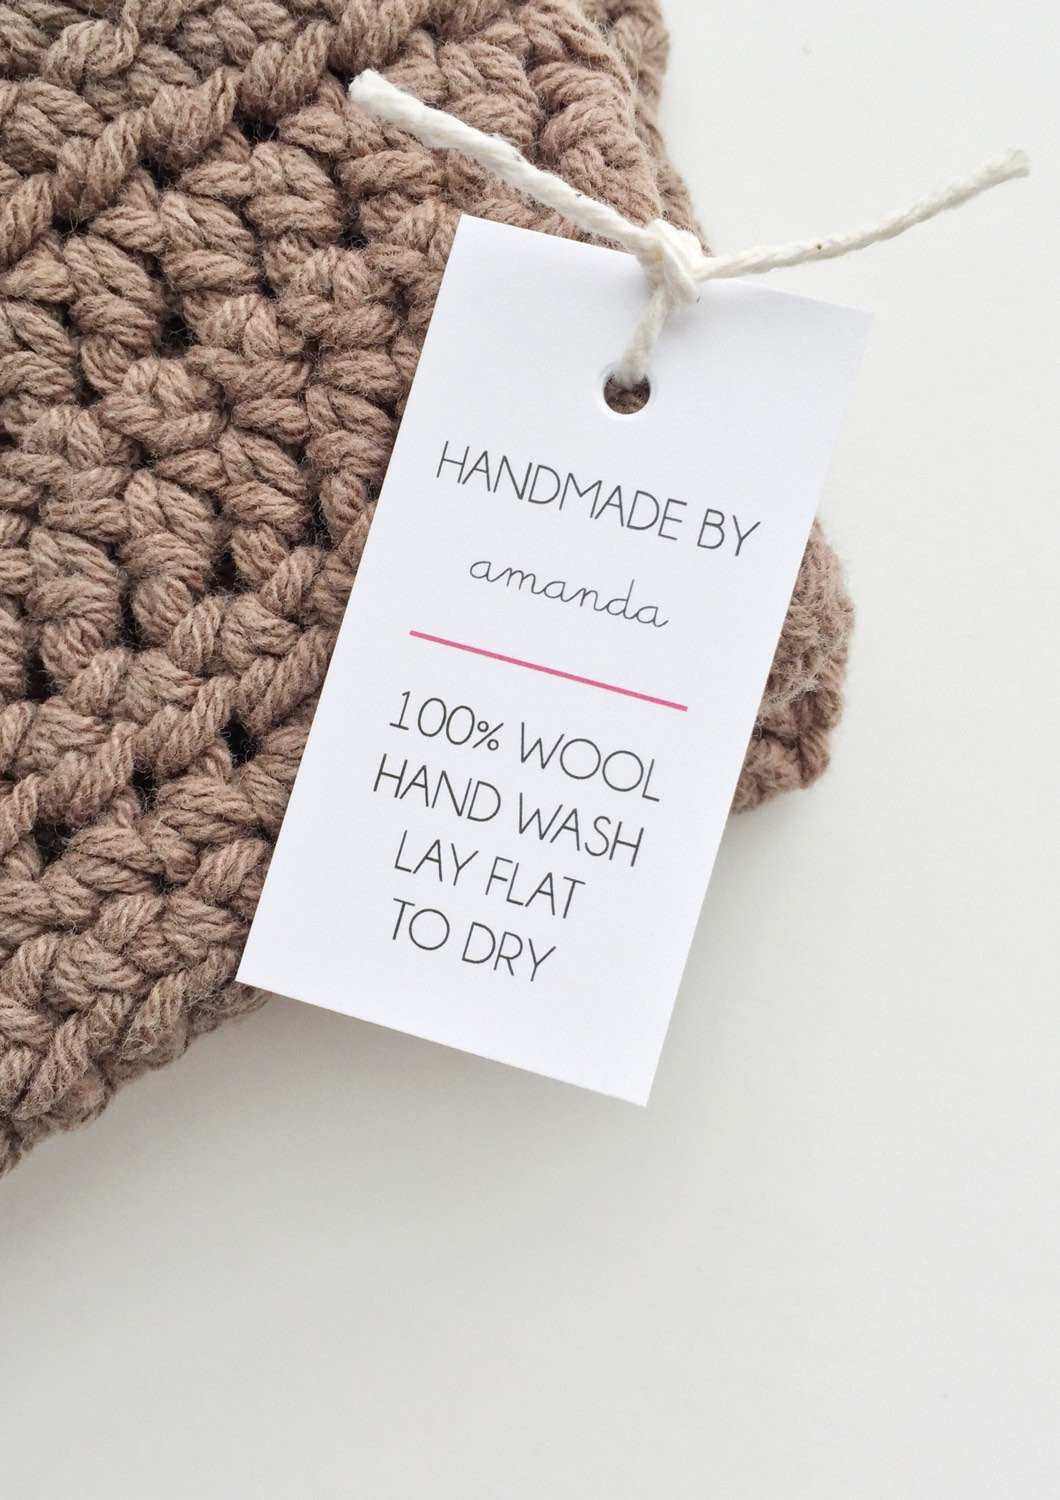 Etsy Shop Labels Handmade Tags Care Tags Handmade With Love